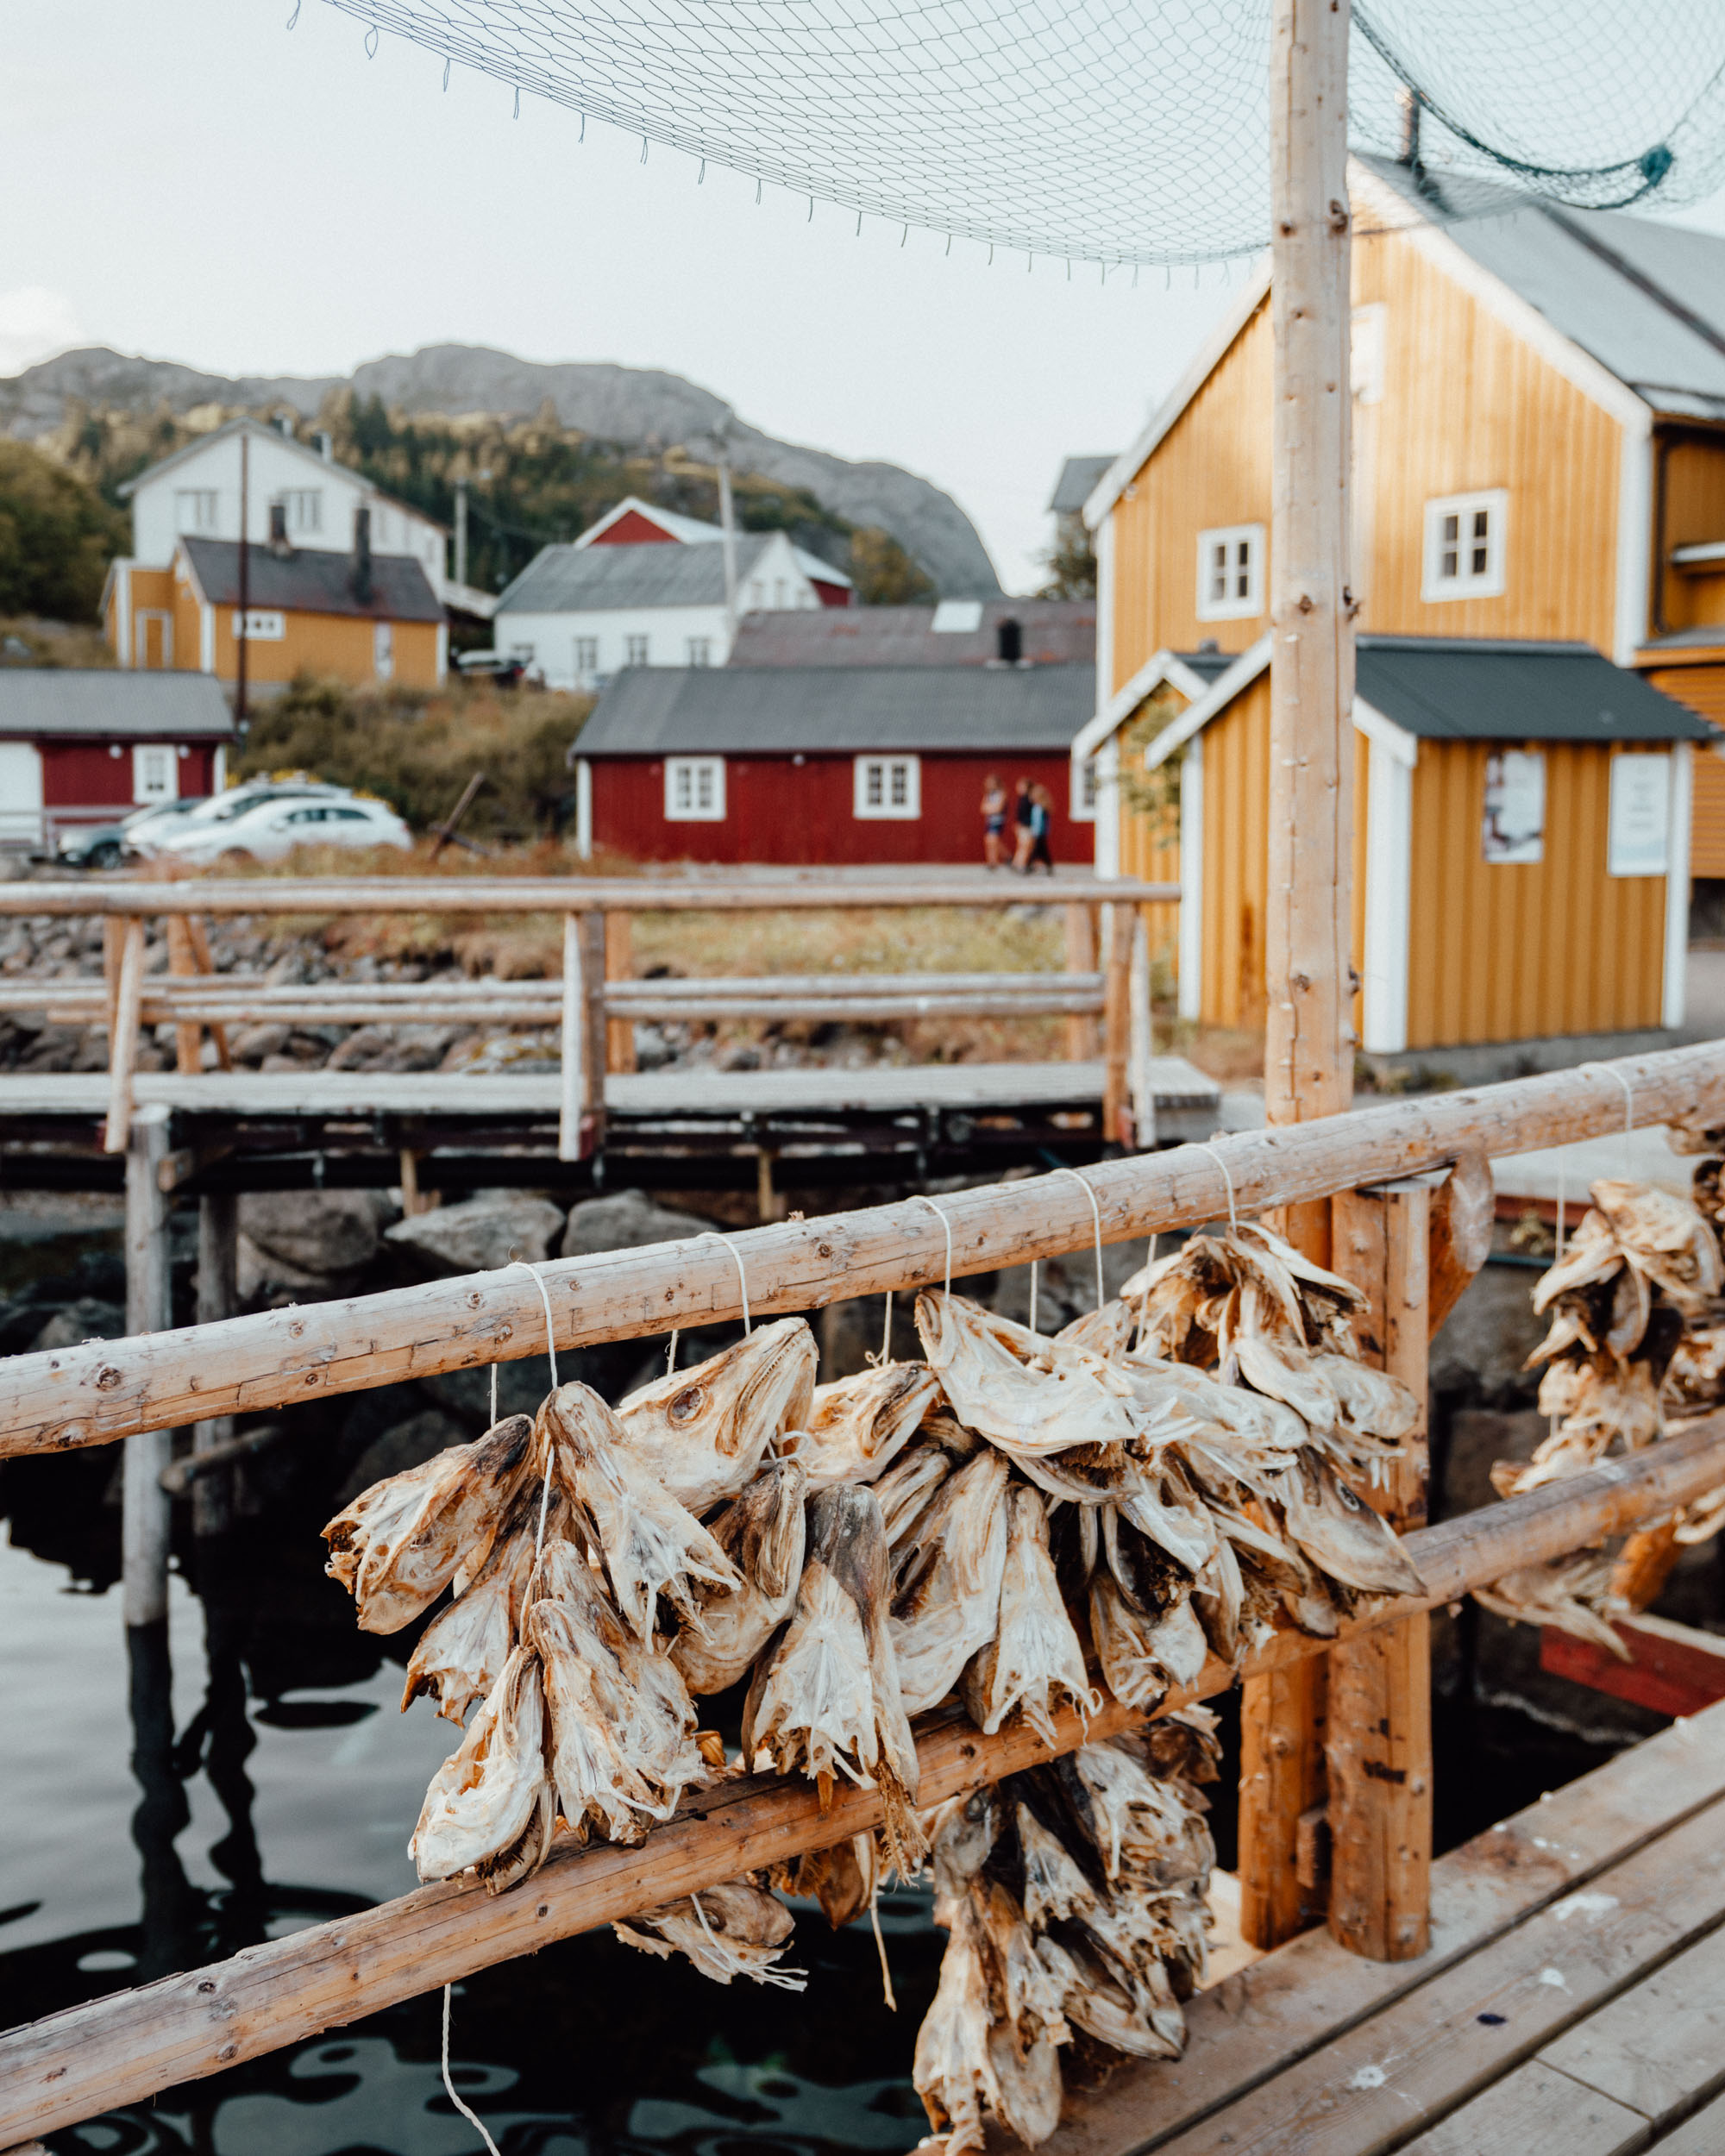 Drying cod fish in Nusfjord fishing town in Lofoten, Norway